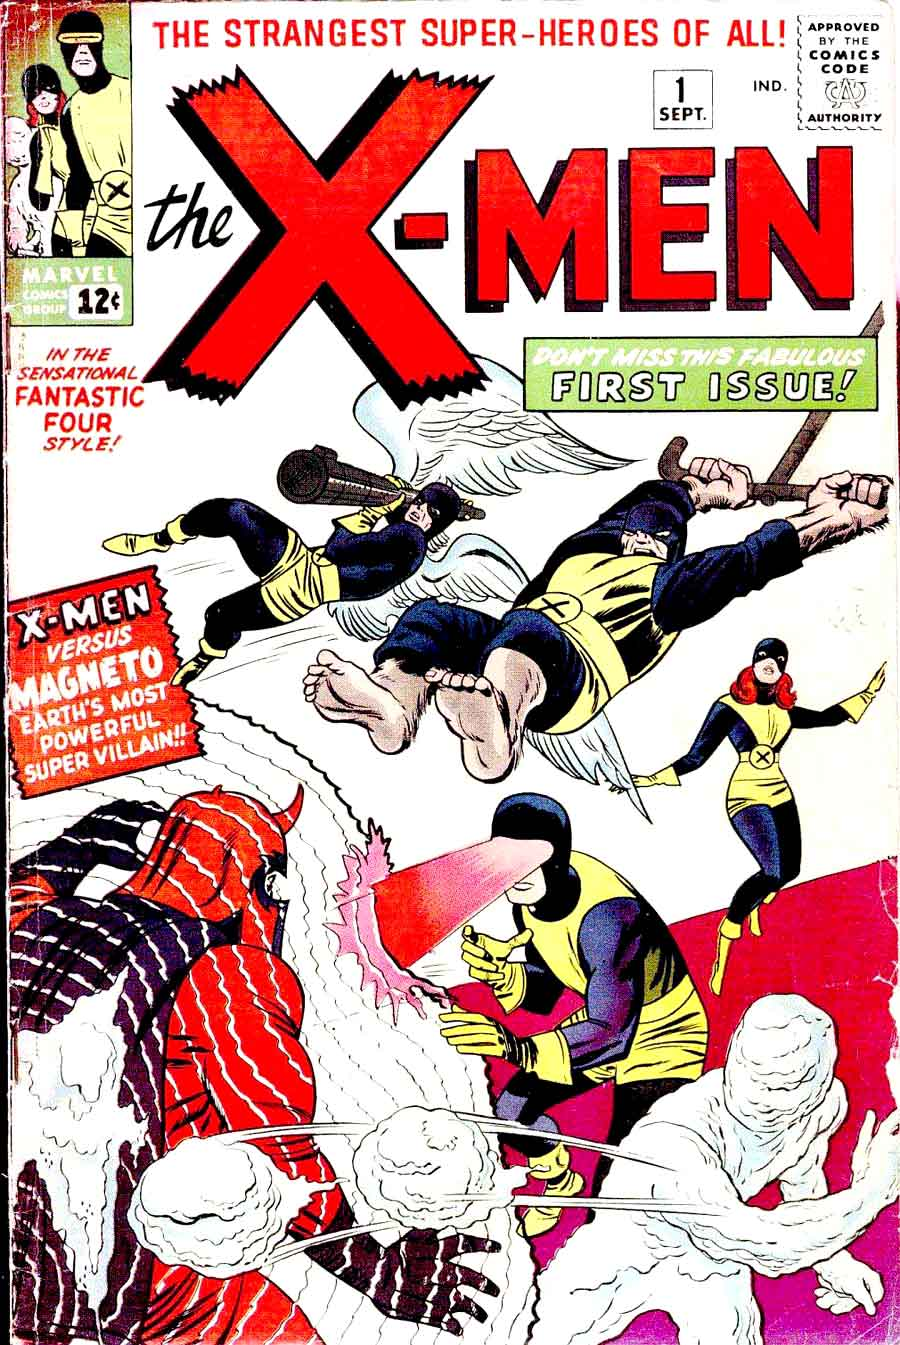 X-men v1 #1 1963 marvel comic book cover art by Jack Kirby